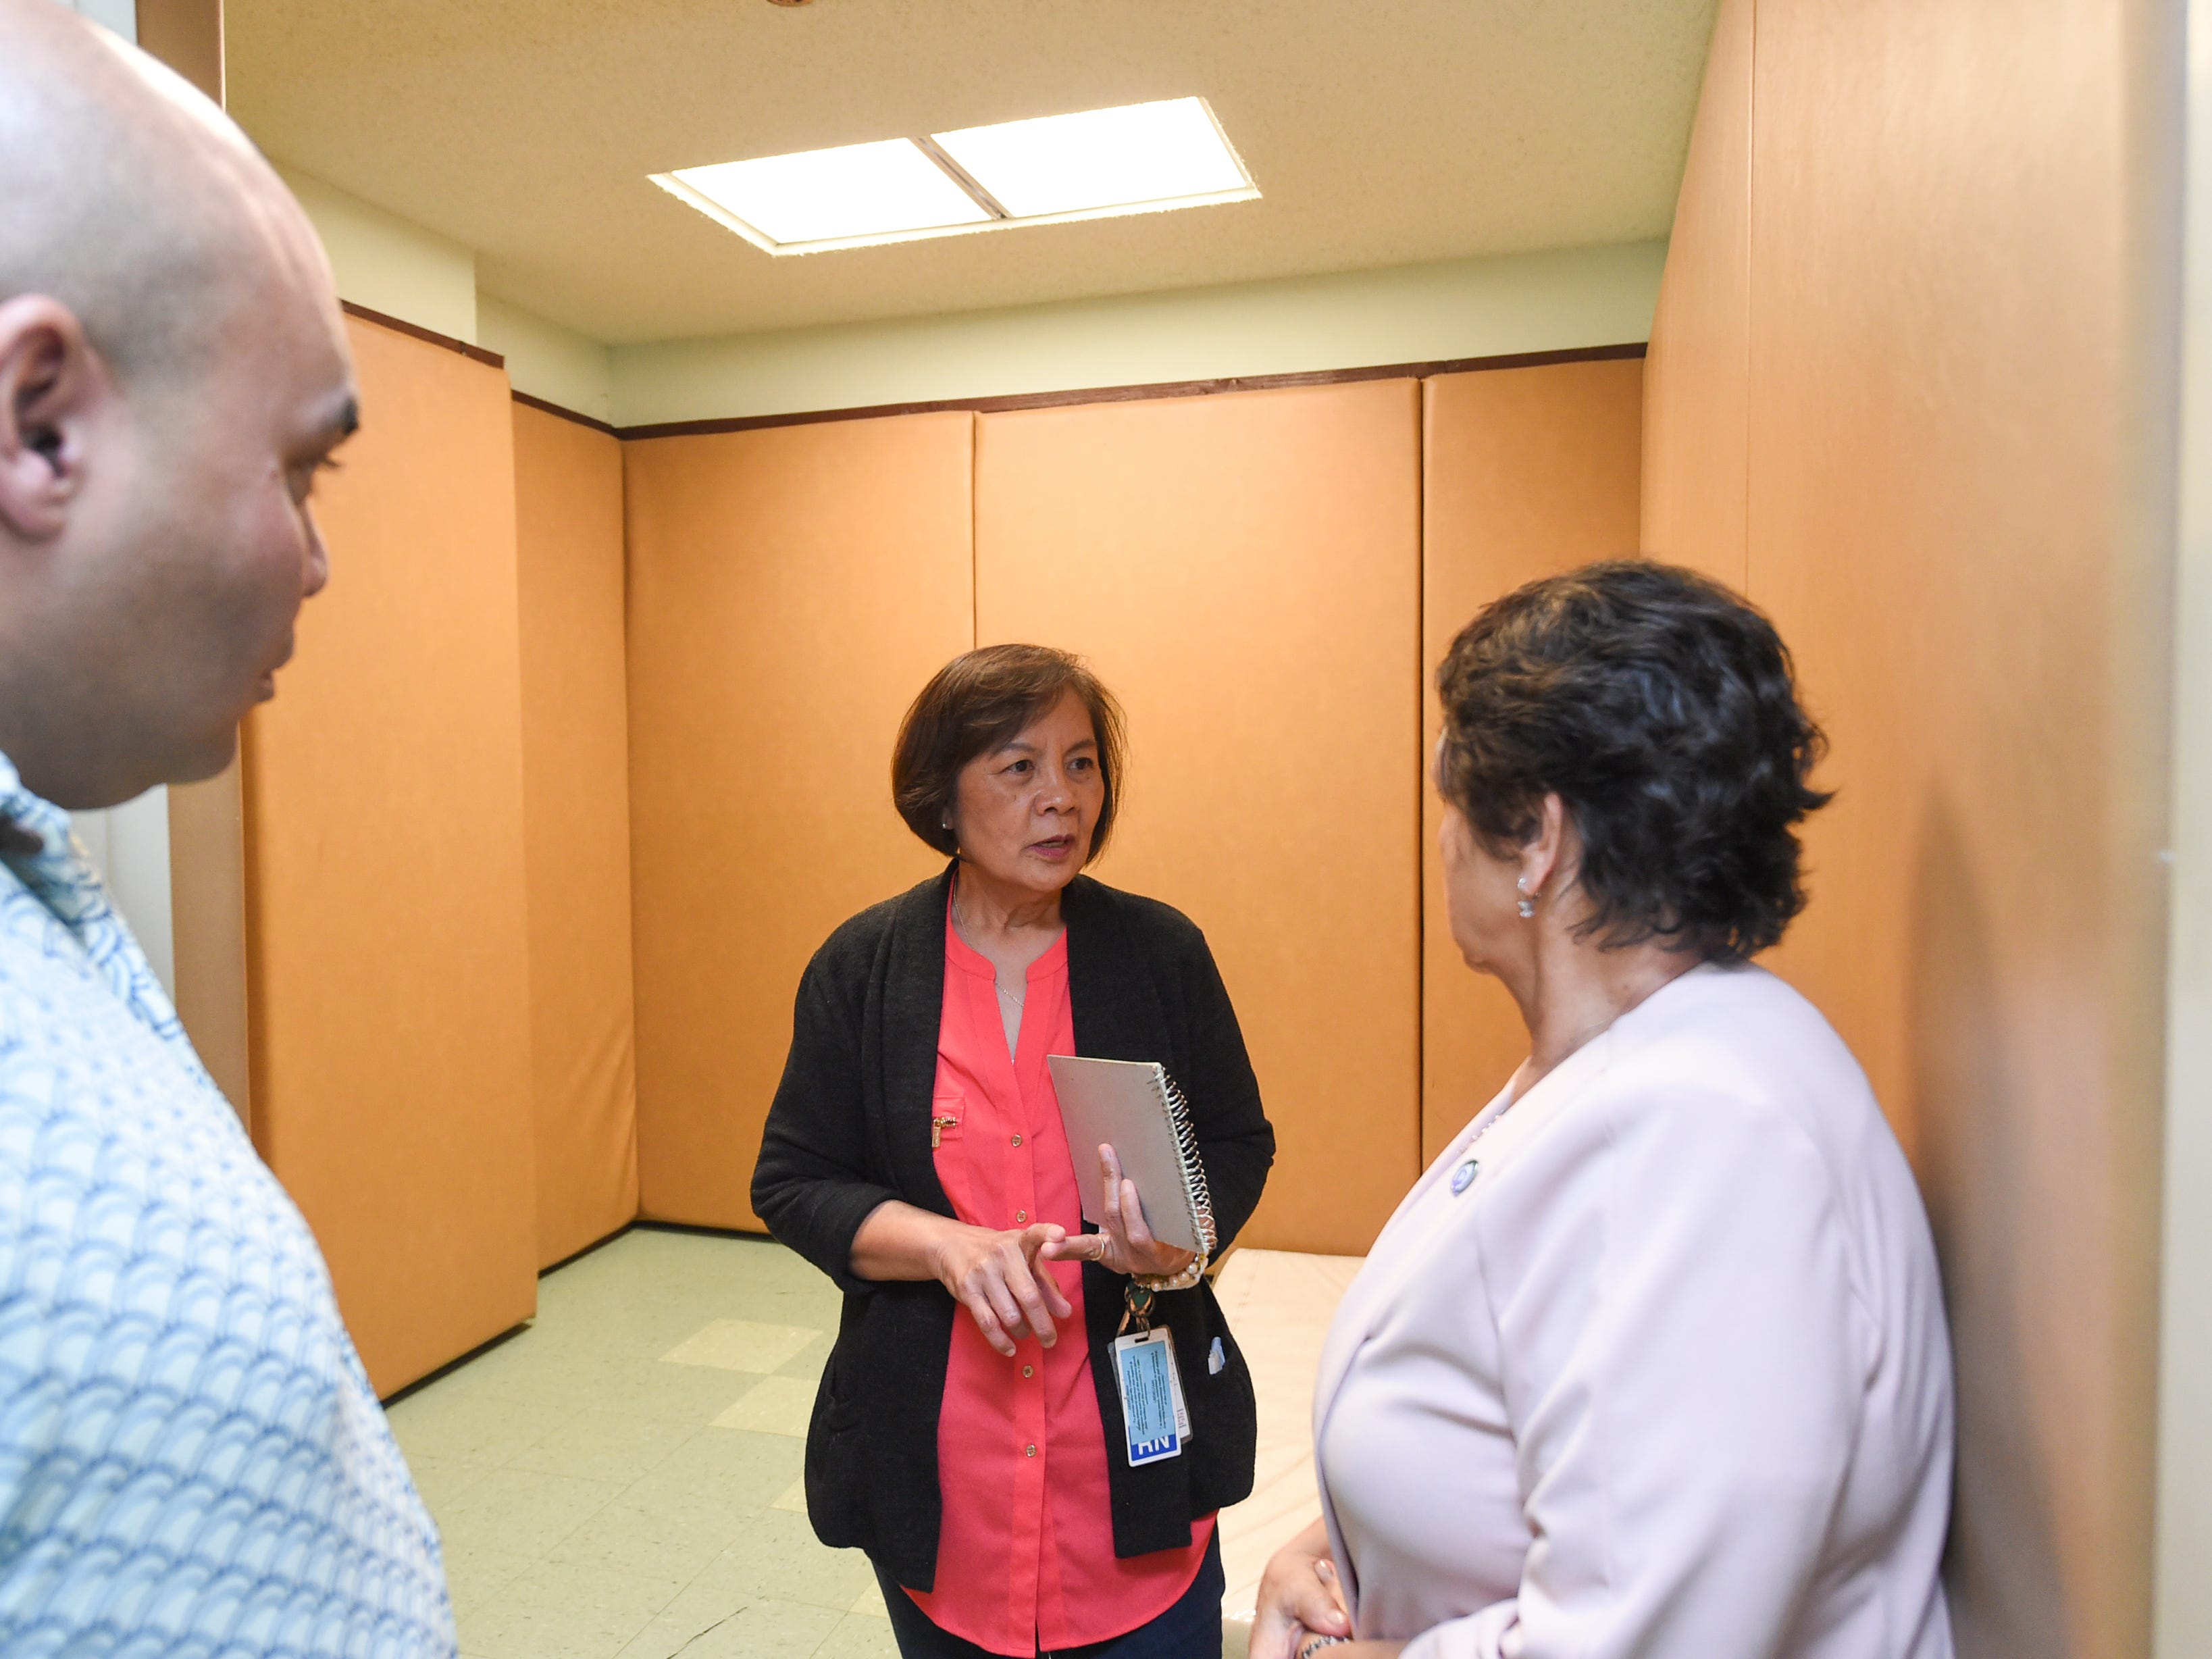 Rosemin M. Sogo-an, a Guam Behavioral Health and Wellness Center psychiatric nurse, center, speaks with Gov. Lou Leon Guerrero and Lt. Gov. Josh Tenorio inside of a padded cell during a tour of their Tamuning facility on Feb. 12, 2019.